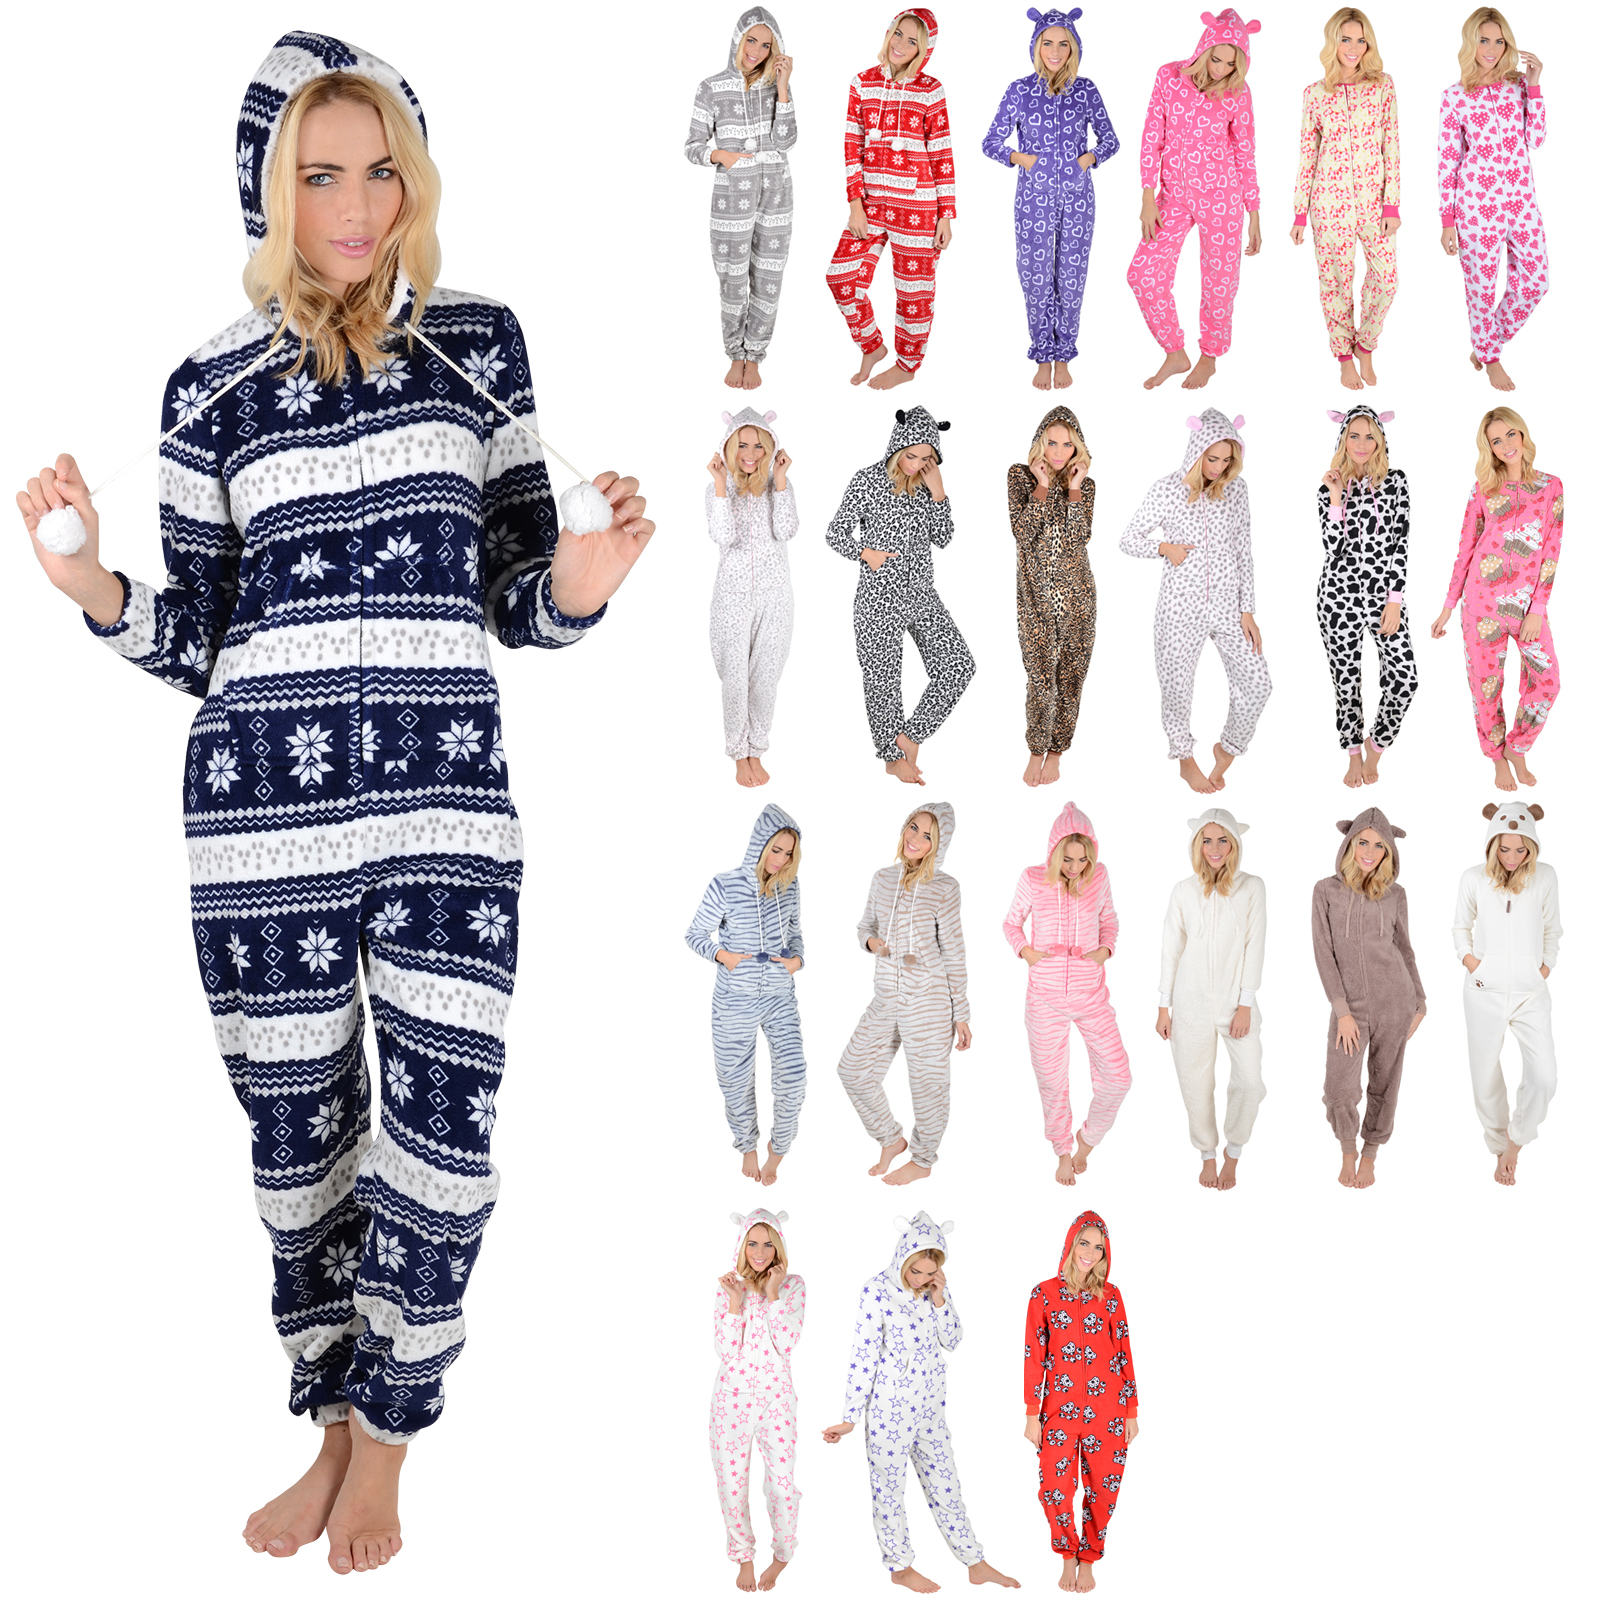 ladies fleece all in one piece pyjamas jump sleep suit pjs nightwear new ebay. Black Bedroom Furniture Sets. Home Design Ideas